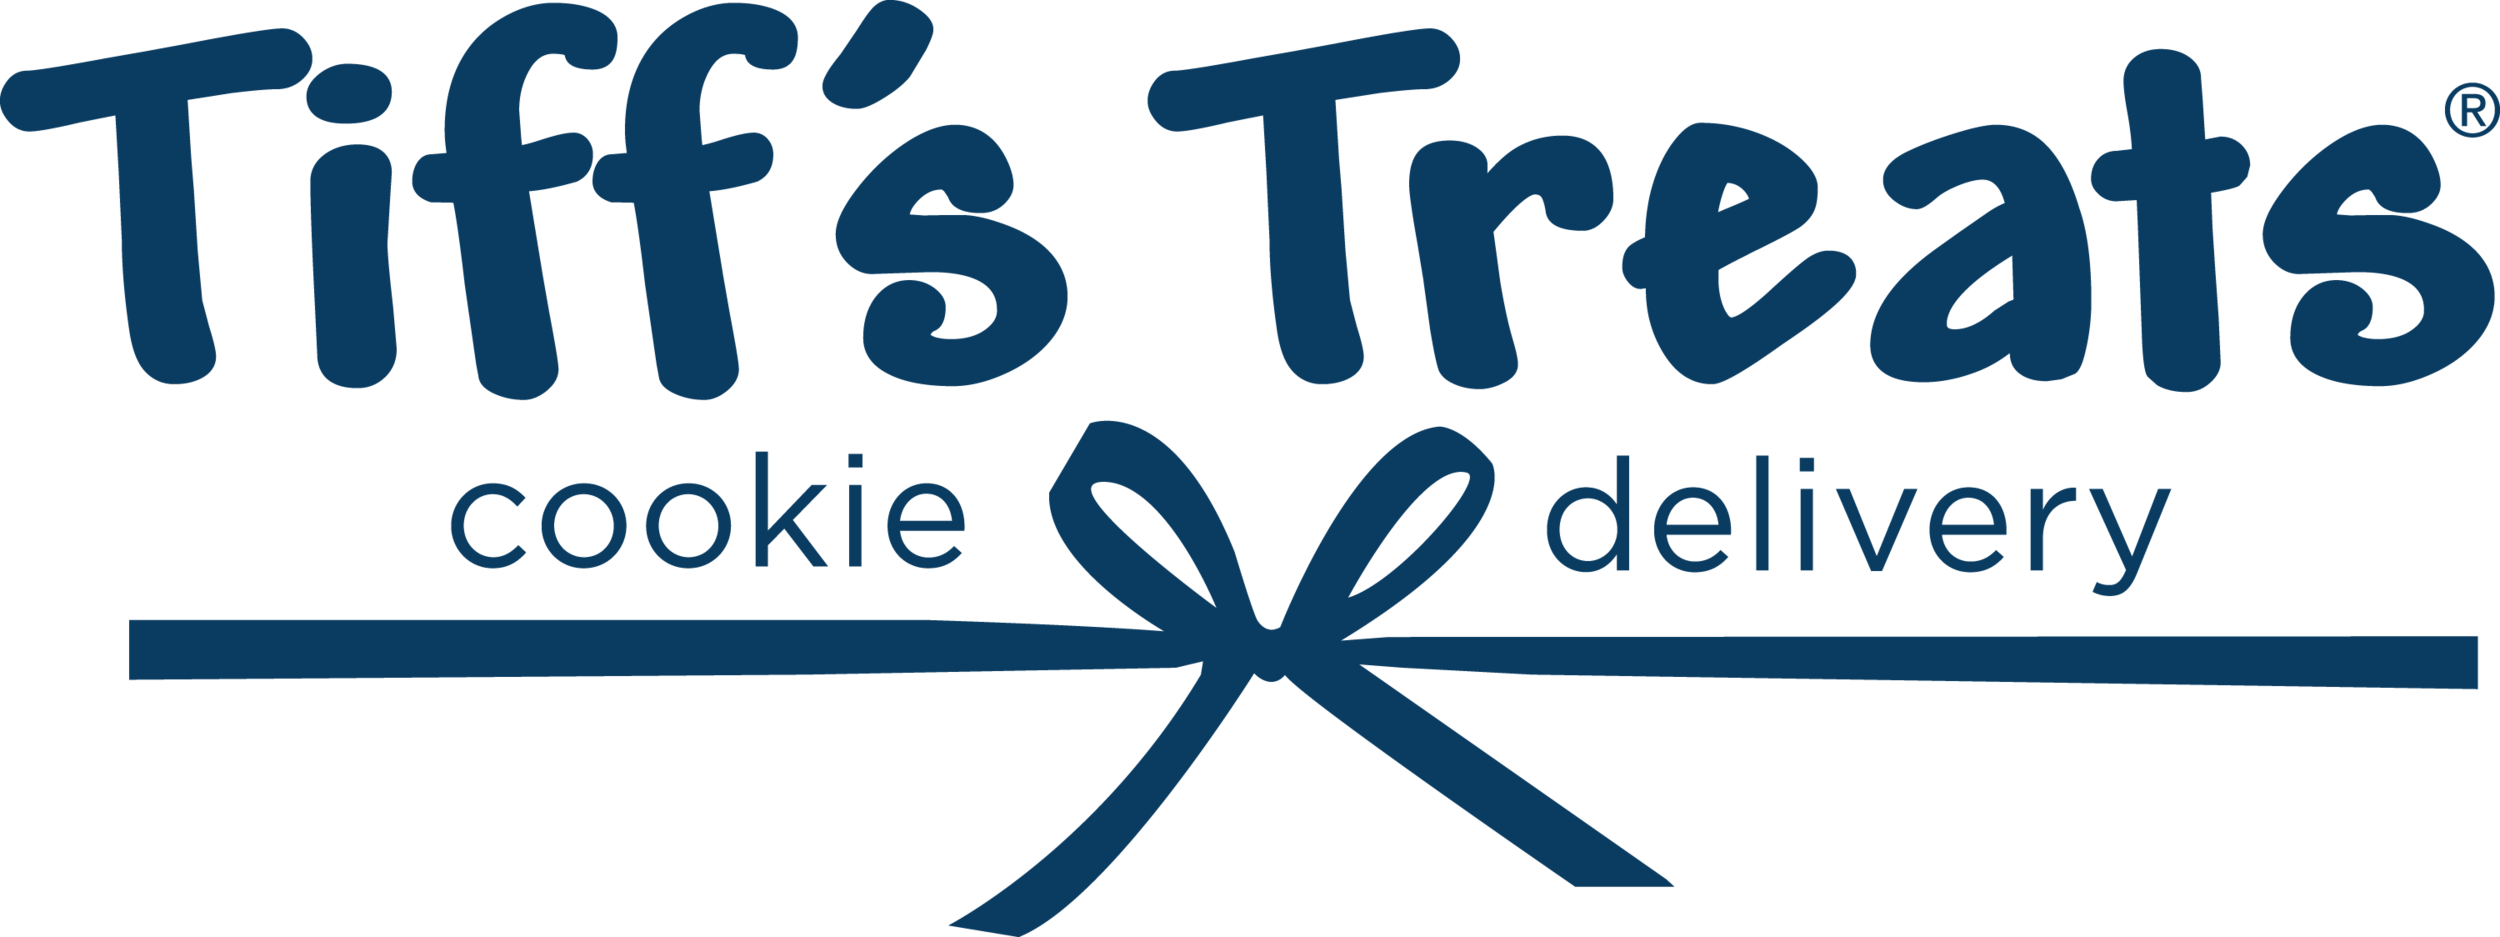 Tiffs Treatas Ribbon Logo Big.png